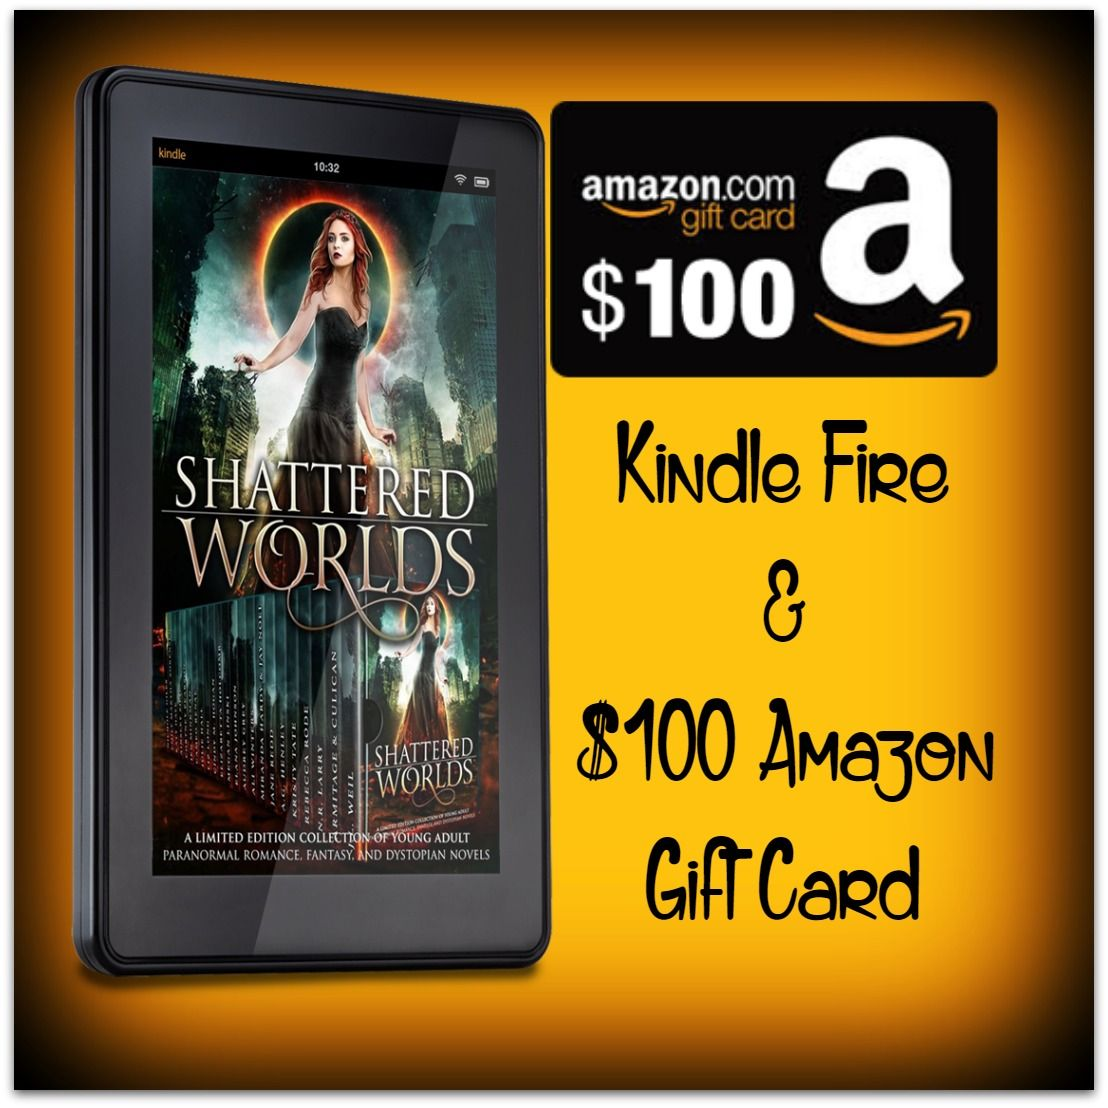 Win A Brand New Kindle Fire And A 100 Amazon Gift Card Amazon Gift Cards Amazon Card Gift Card